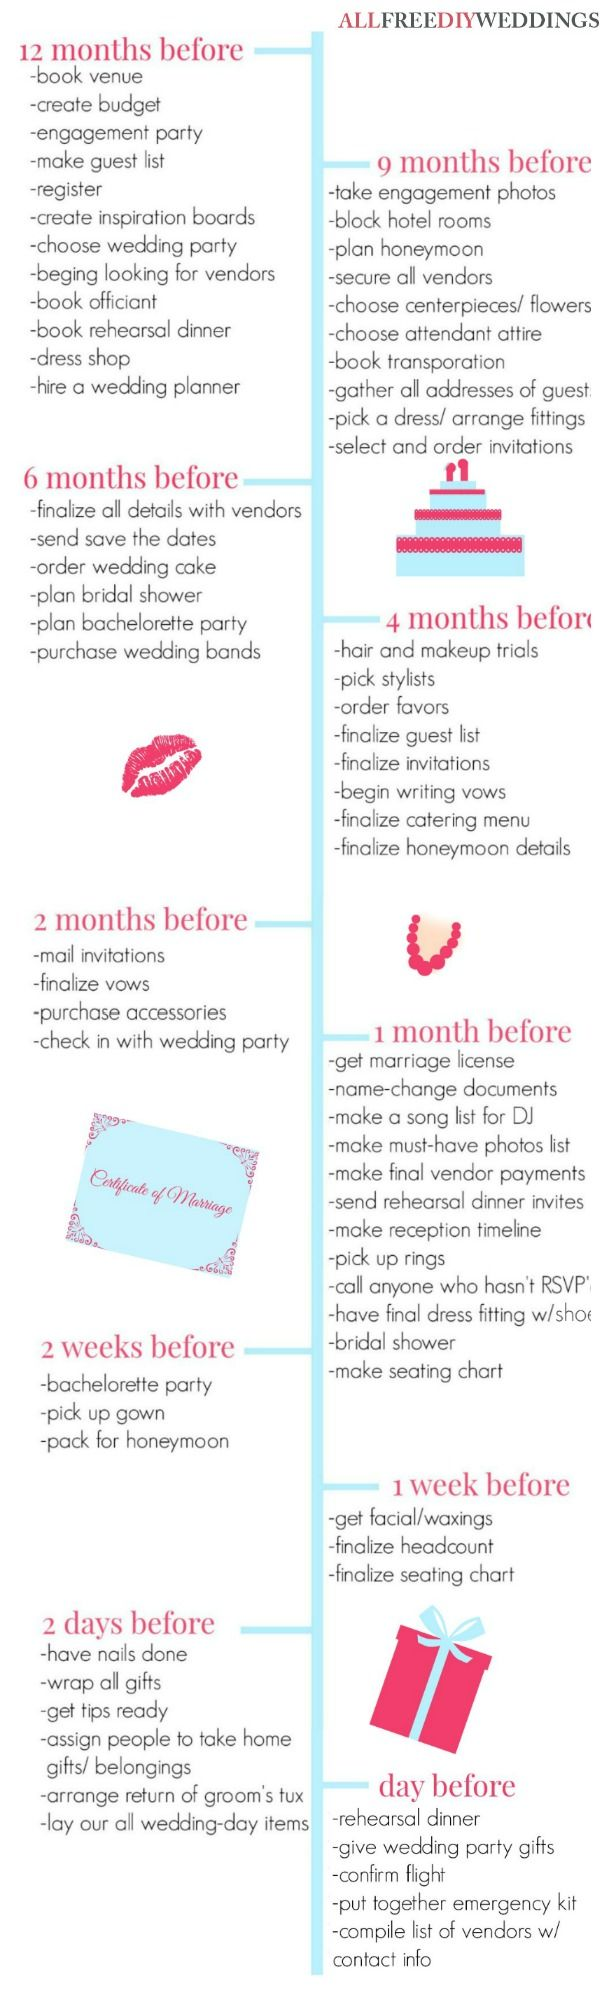 Wedding Planning Timeline  Timeline Weddings And Wedding